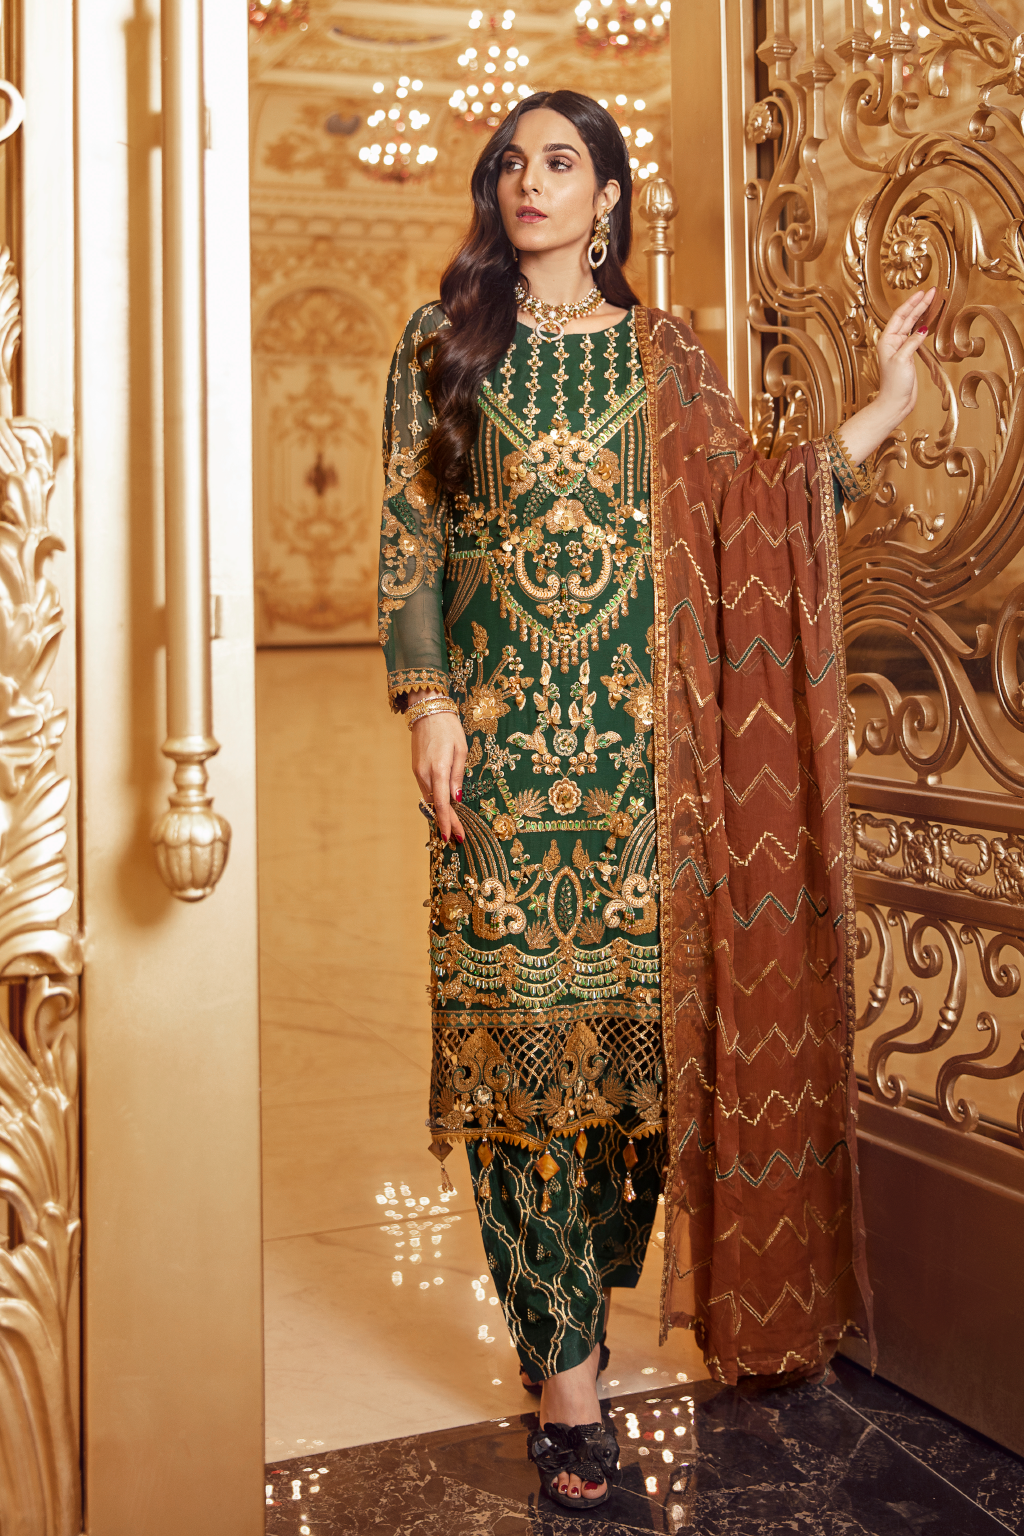 Shop now EMAAN ADEEL | BELLE ROBE - BR-07 PEACE OUT at www.LebaasOnline.co.uk  Net embroidered hand mirror work, New Indian & Pakistani Designer Partywear Suits in the UK and USA at LebaasOnline. Browse new EMAAN ADEEL | BELLE ROBE - BR-07 PEACE OUT Chiffon, Wedding Party, Nikah & Walima dresses SALE at LebaasOnline.